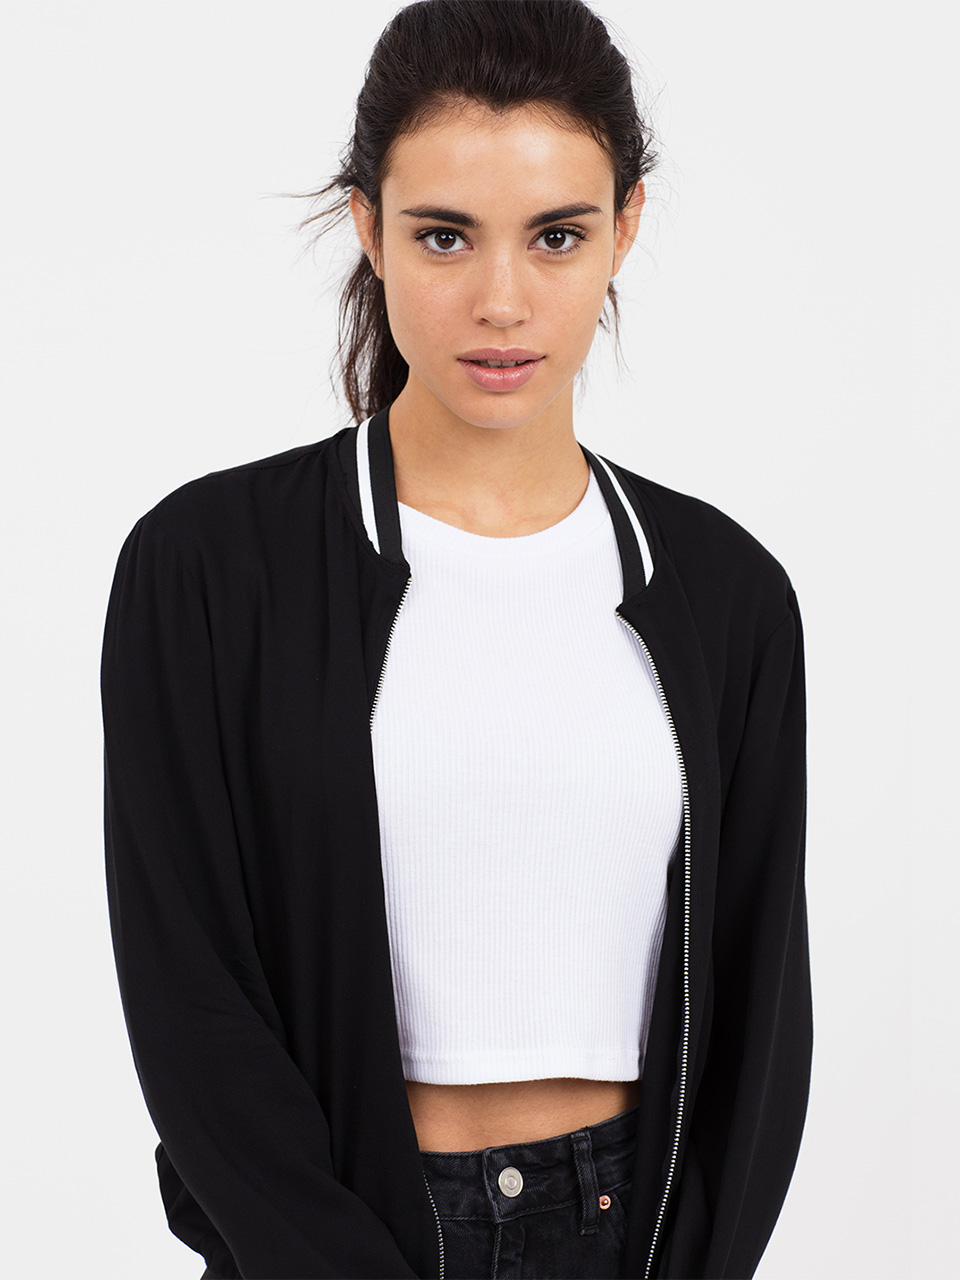 Black Sports Rib Bomber Jacket Chanel that laidback nineties look this season with our Sports Rib Bomber Jacket. We've kept the style lightweight and loose, making it perfect for springtime dressing, and kept to a monochrome colour scheme for maximum impact. Complete with ribbed trims, invisible side pockets and contrasting silver zip detailing, throw it over a crop top and jeans by day, and a bodycon dress by night. Main Fabric: 100% Viscose Contrast: 75%Polyester 25 % Elastane Item No. 69883